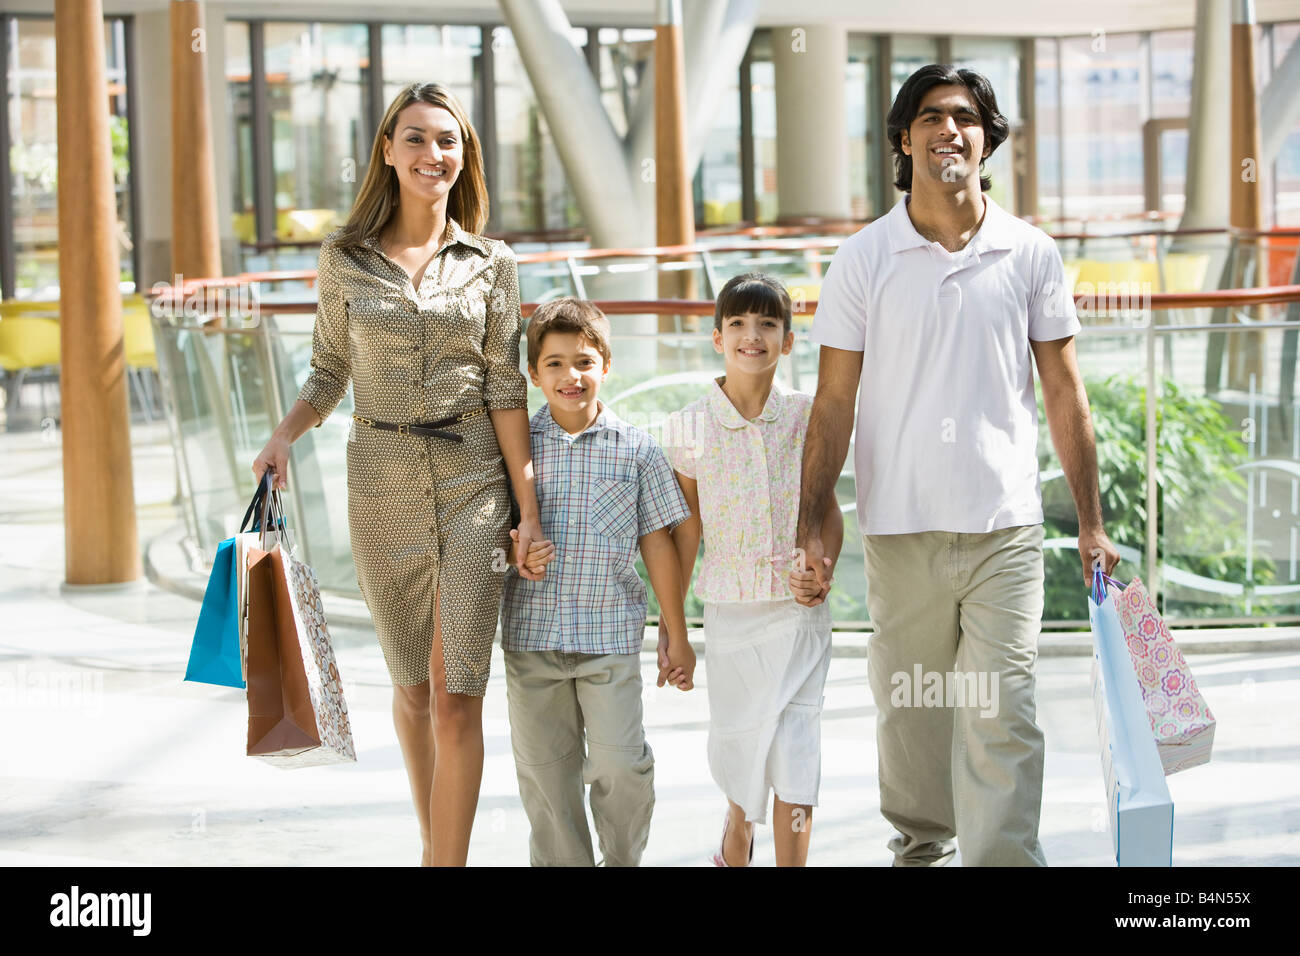 Family walking in mall holding hands and smiling (selective focus) - Stock Image